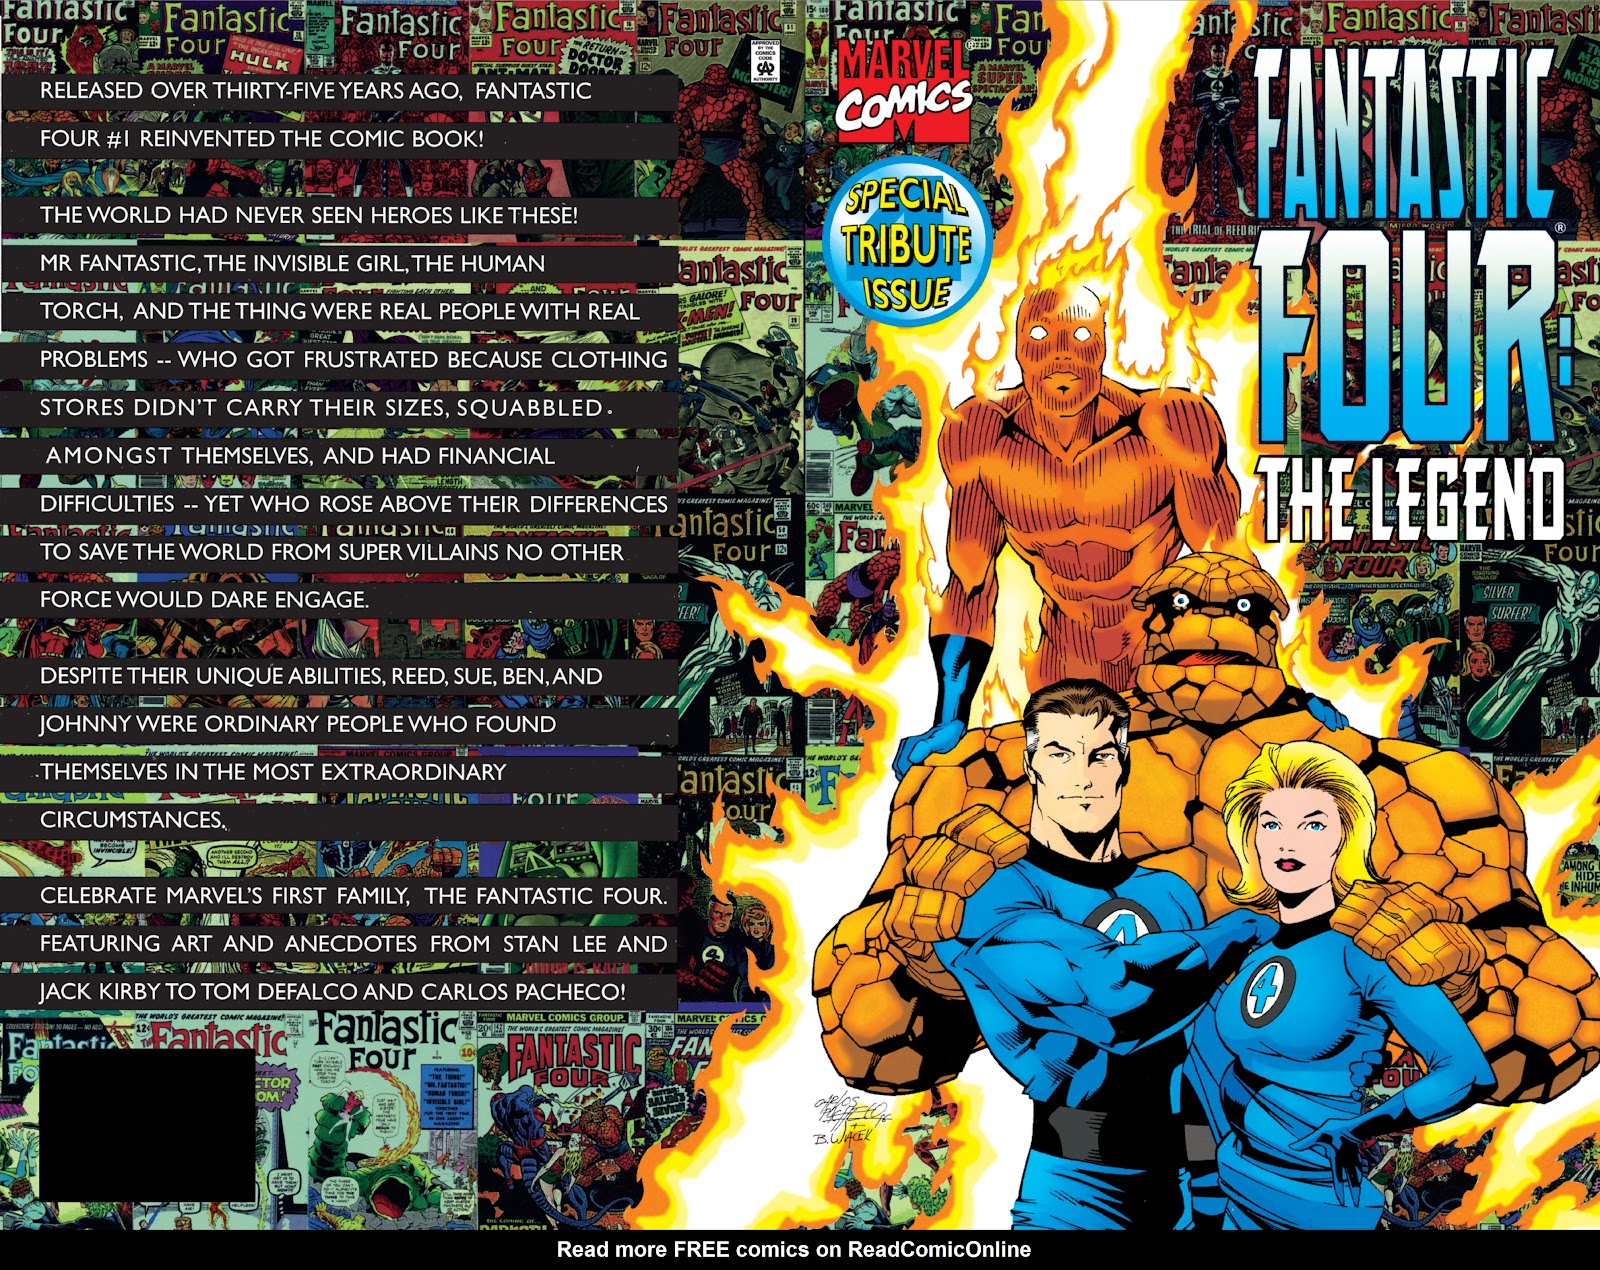 Read online Fantastic Four: The Legend comic -  Issue # Full - 2